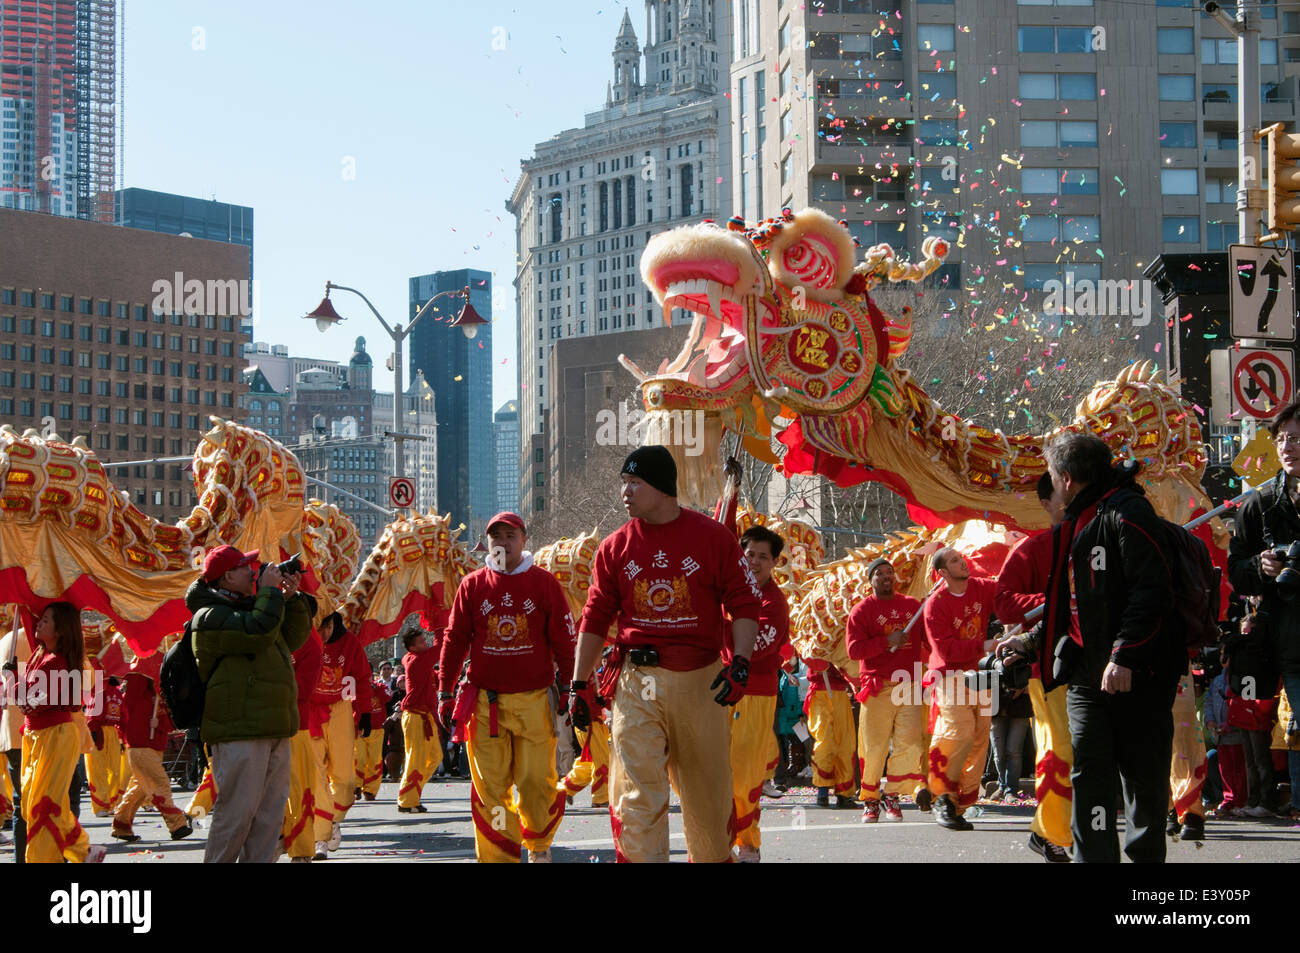 Chinese New Year New York city Chinatown. (Year of the tiger.) - Stock Image